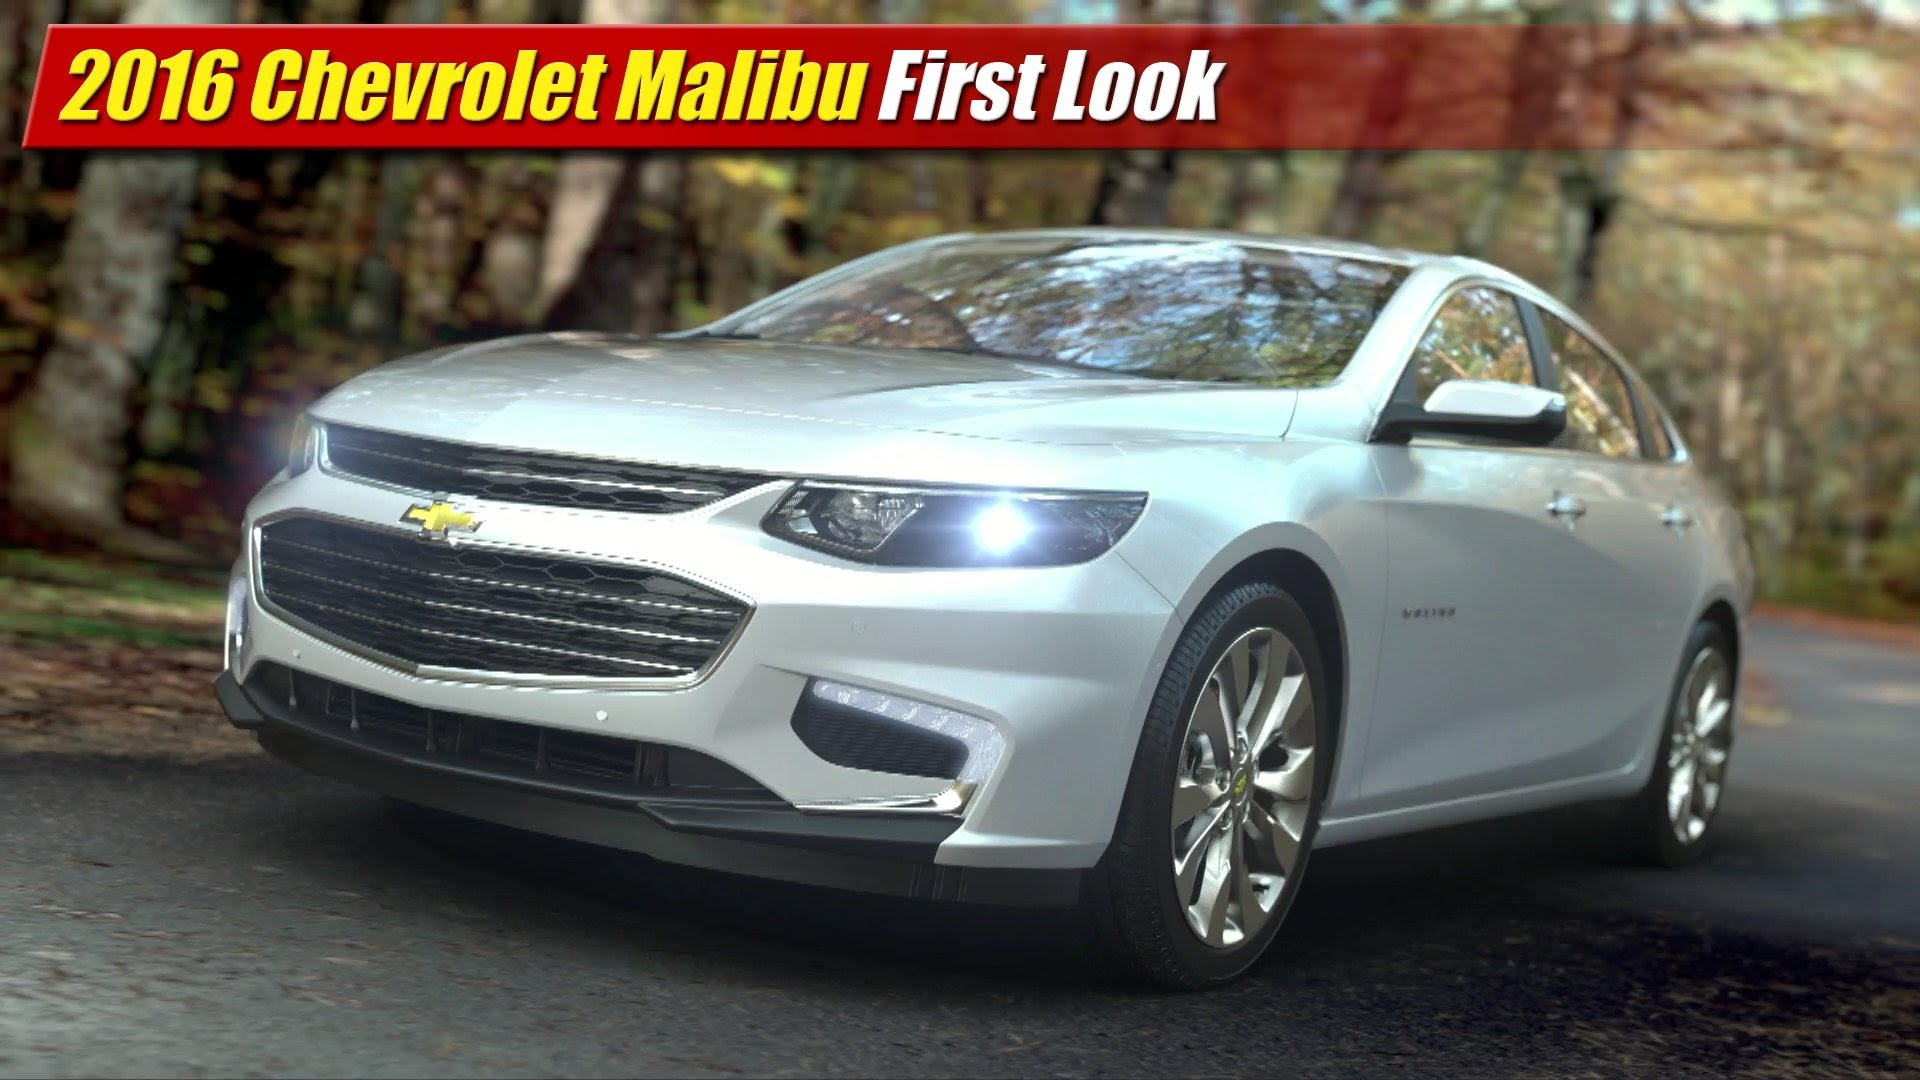 Excellent First Look 2016 Chevrolet Malibu  TestDrivenTV